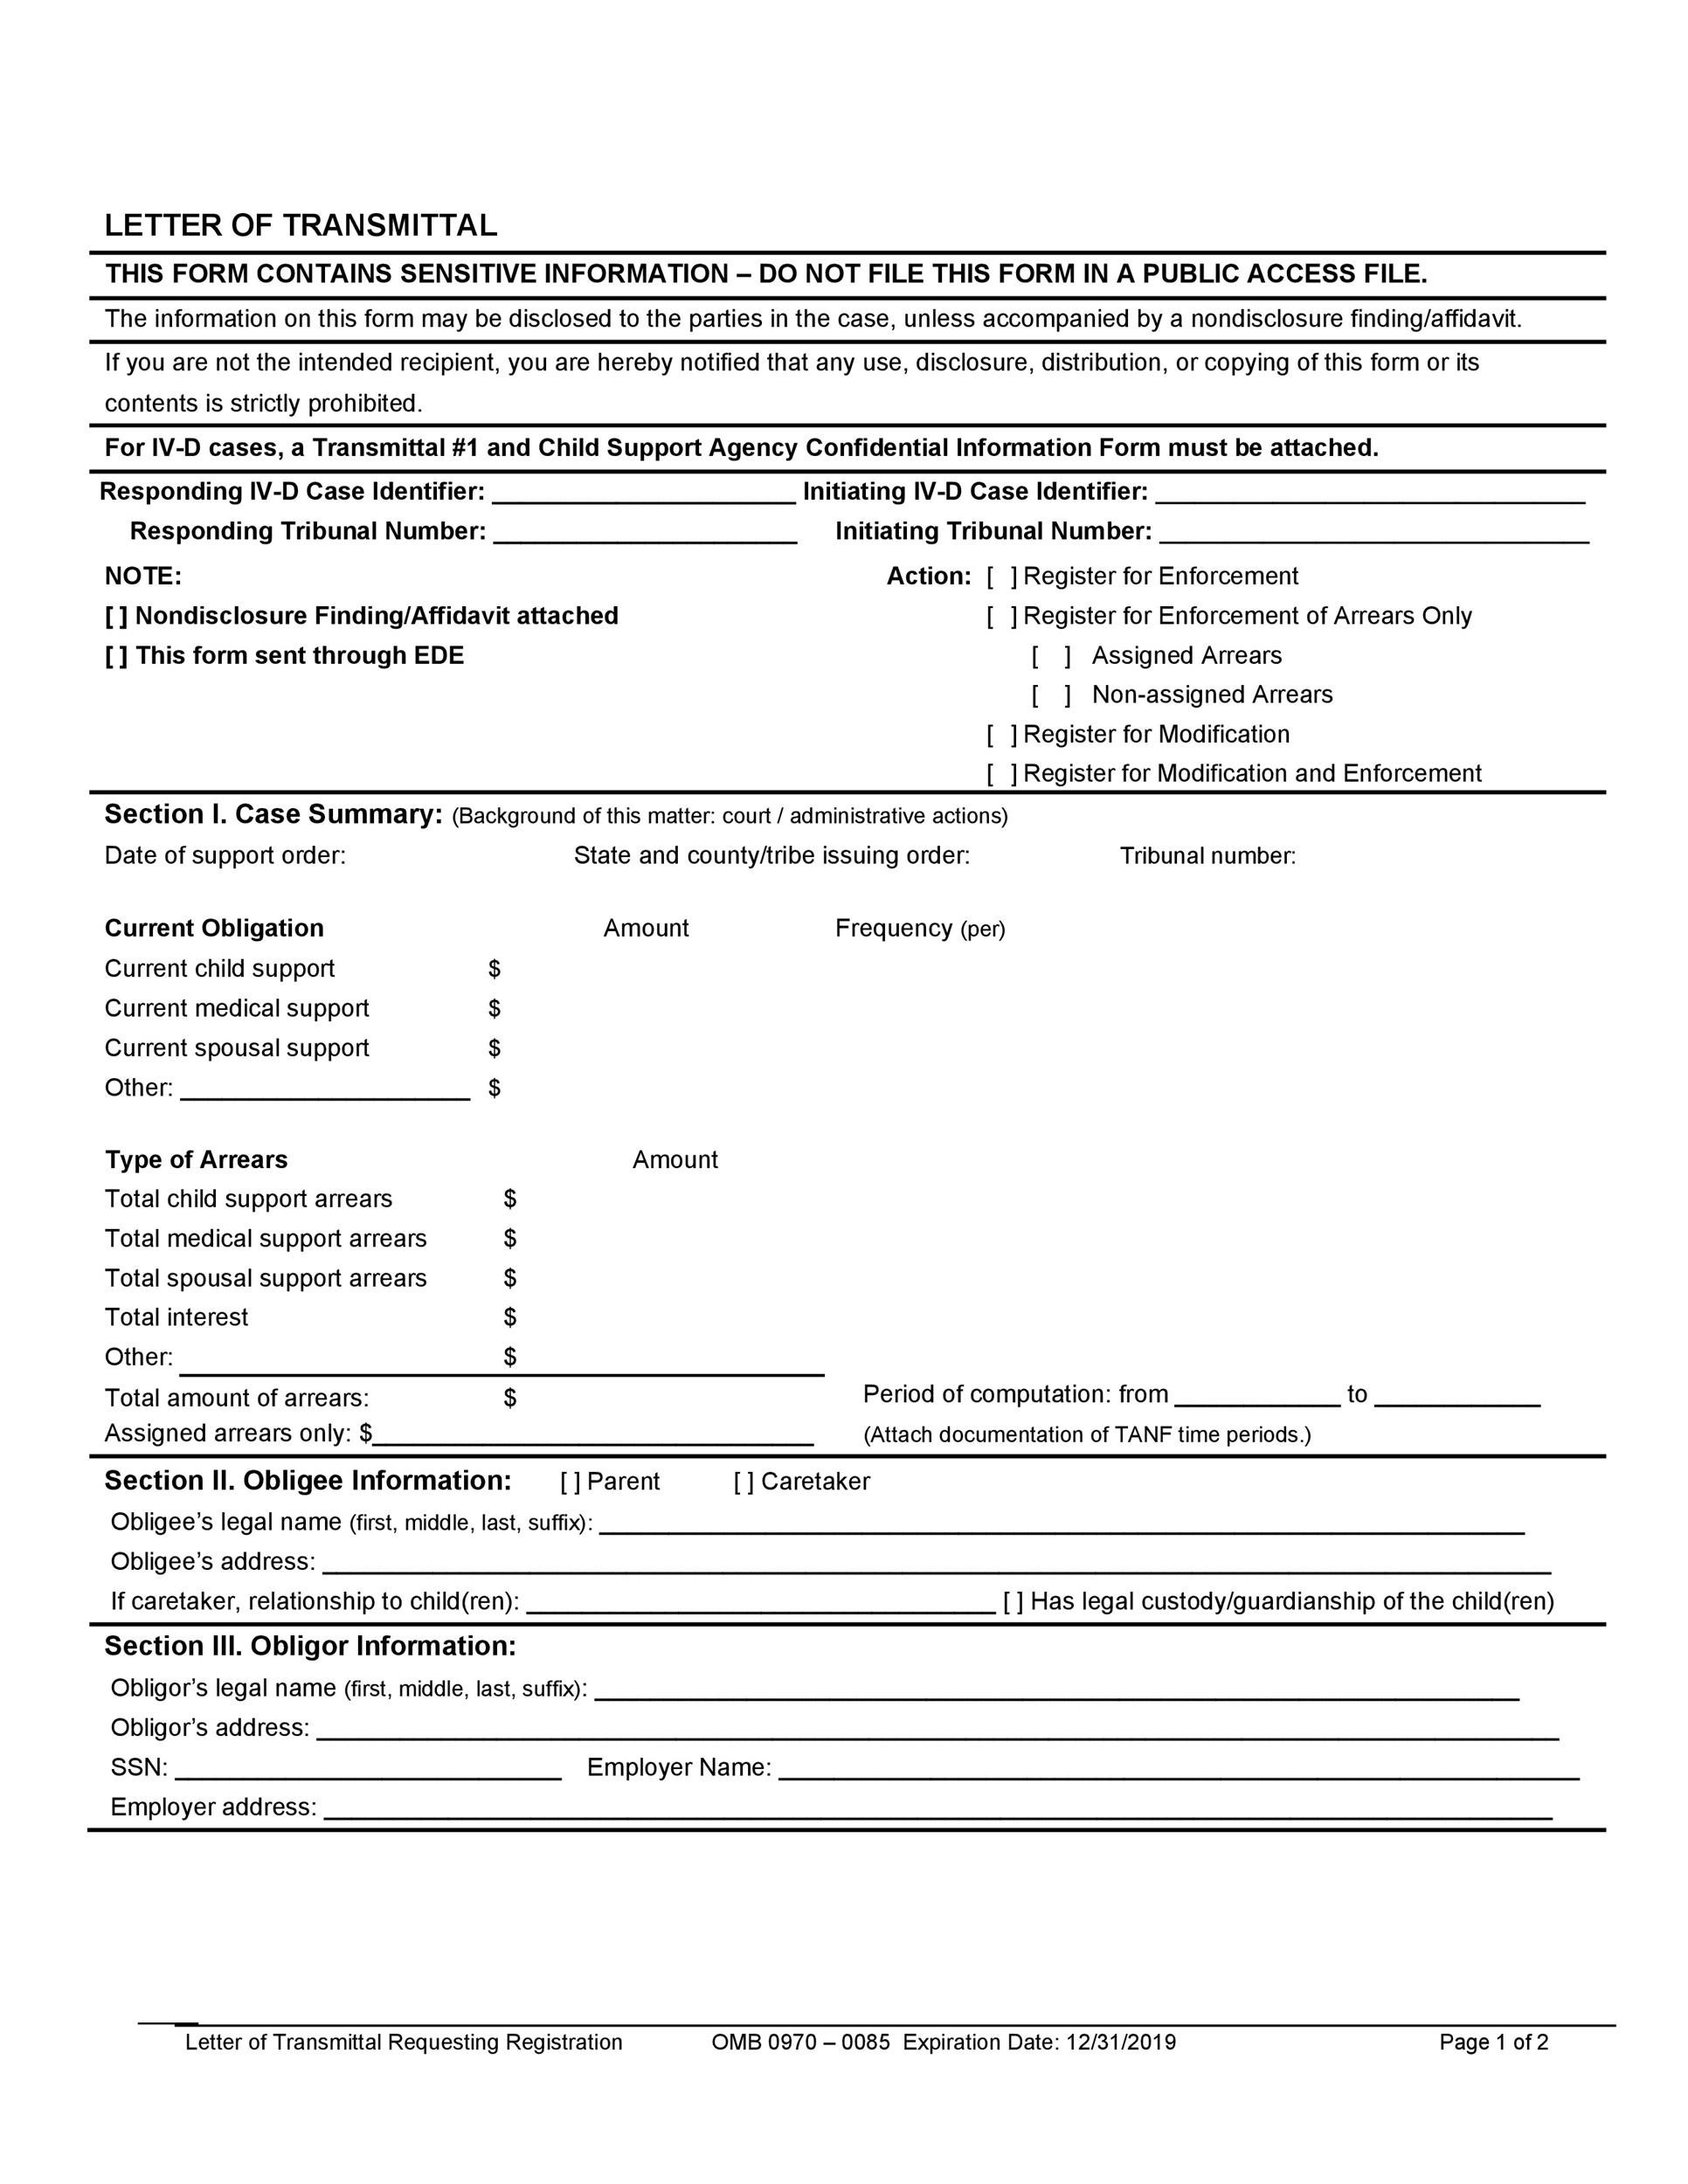 Free letter of transmittal template 21